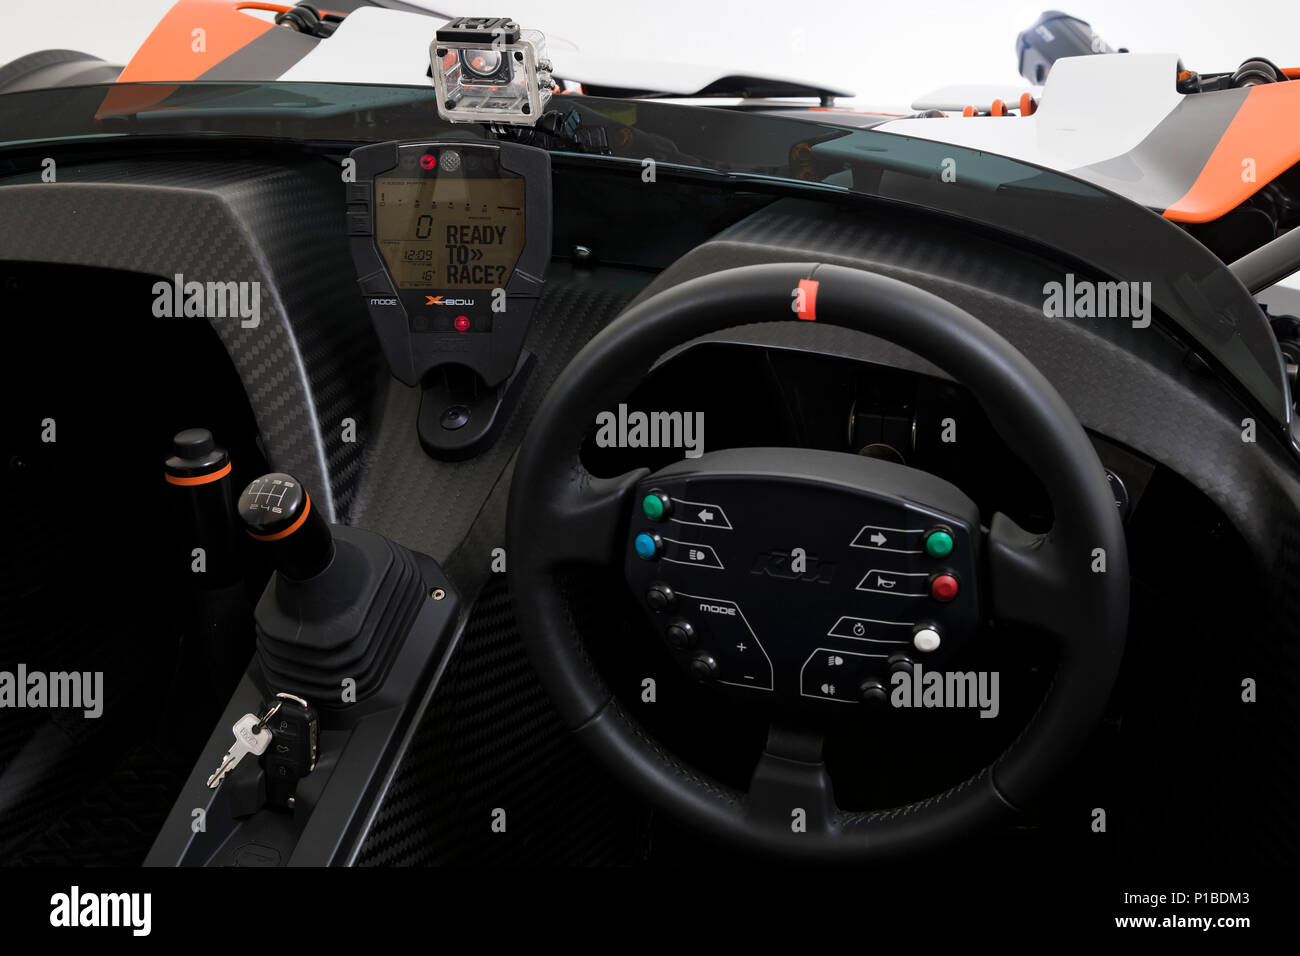 2012 KTM X-Bow - Stock Image